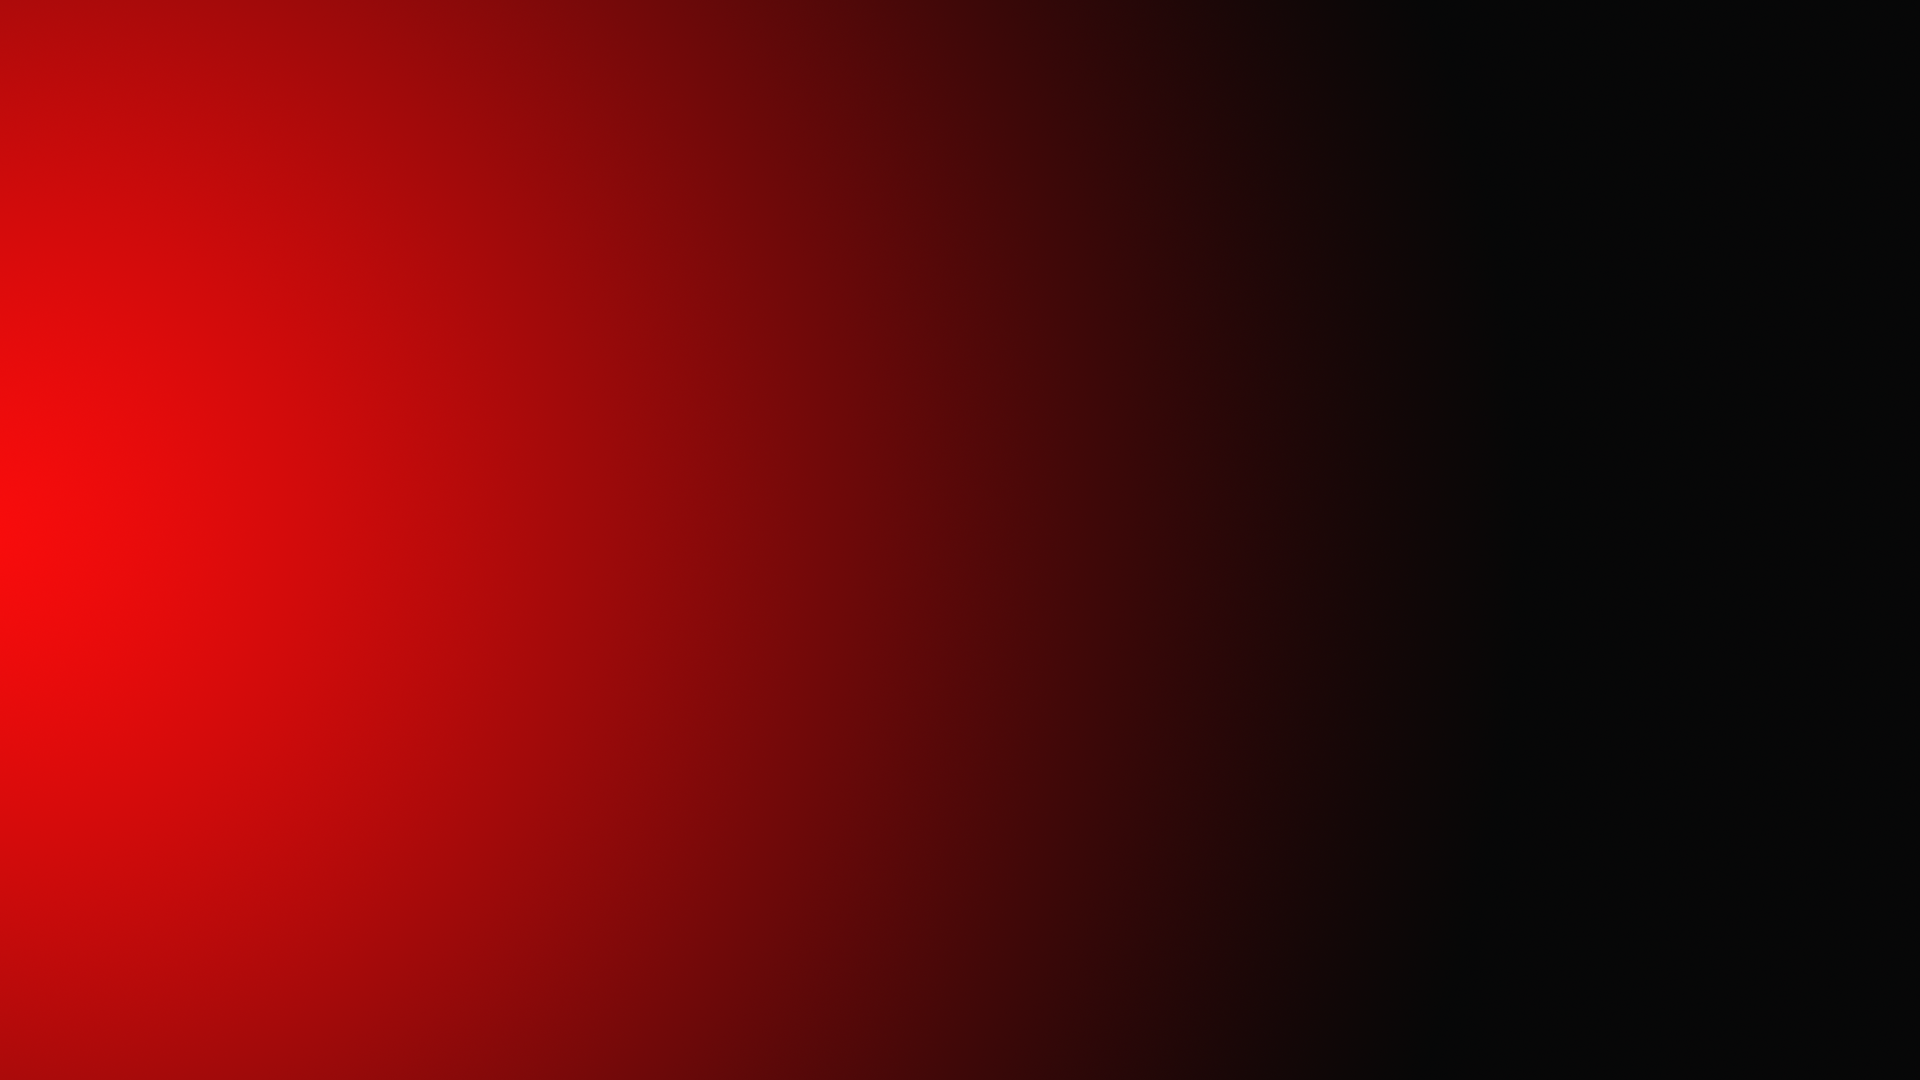 comwp contentuploads201210Red black gradient destop wallpaperpng 1920x1080